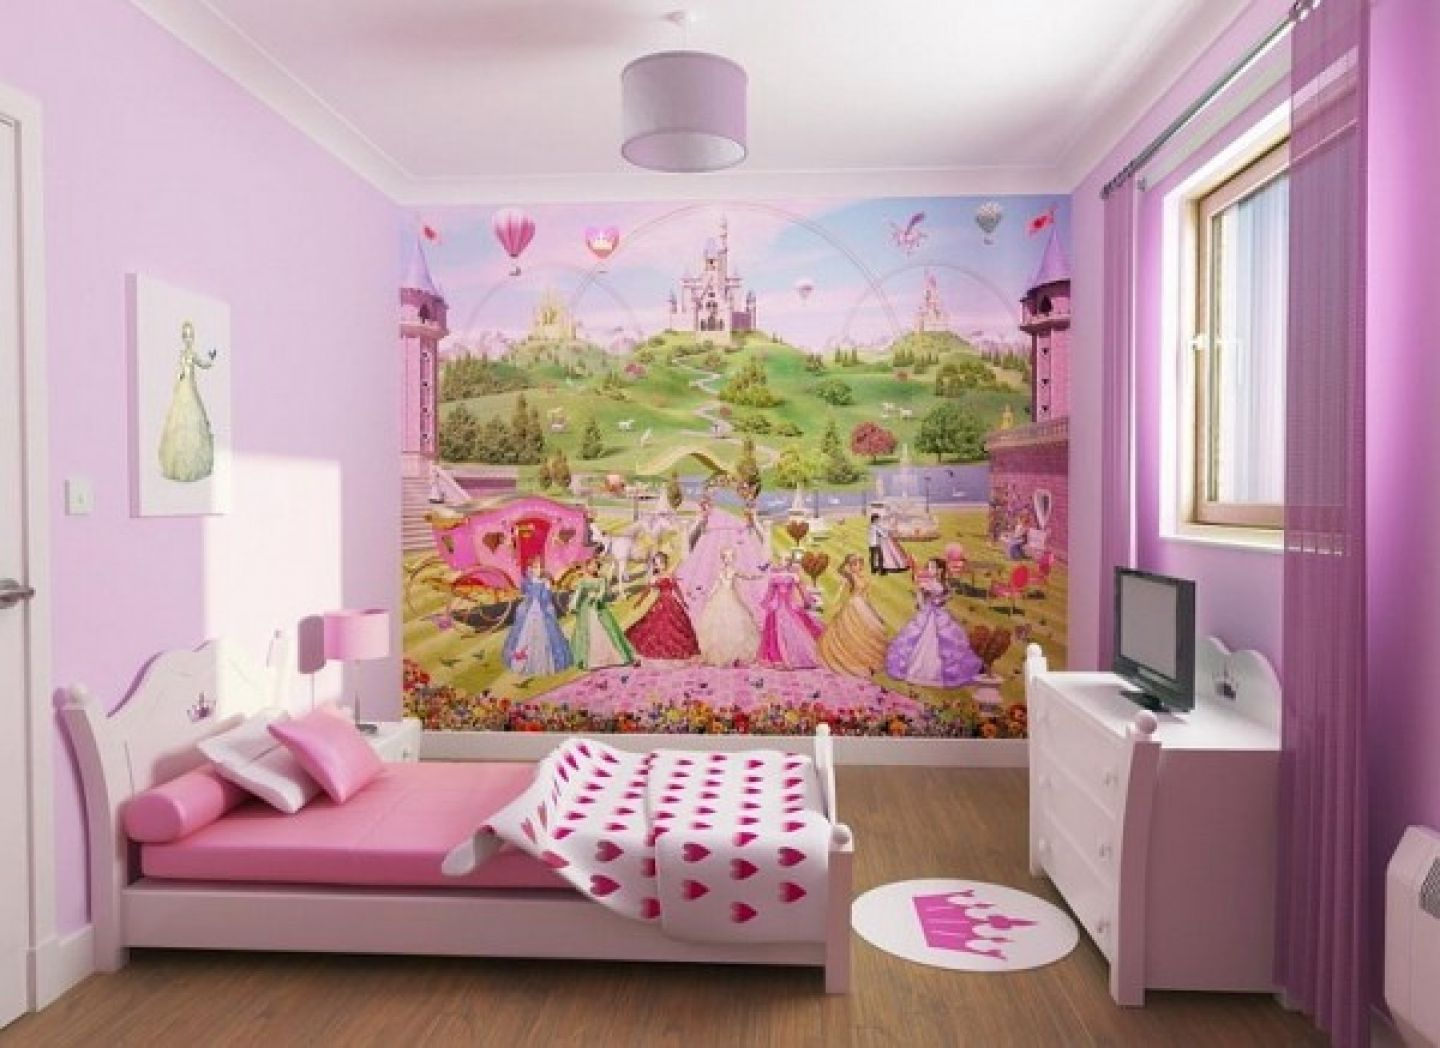 Bedroom Design Ideas For Girls inspiration 50+ girl bedroom decorating ideas design inspiration